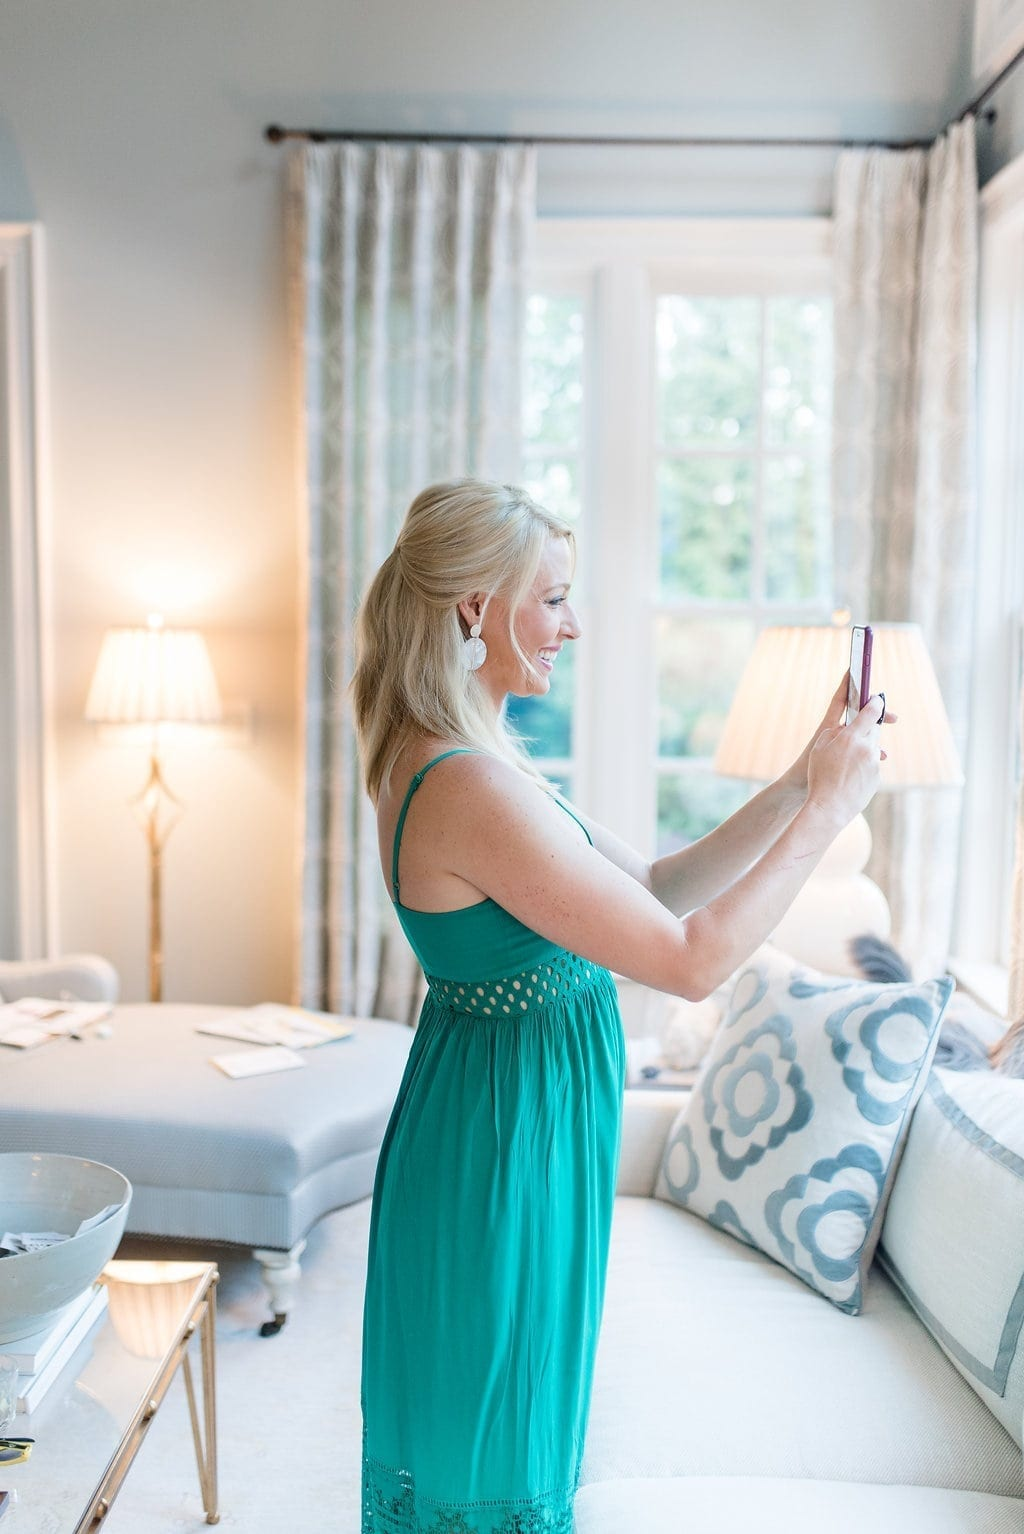 What is the best selfie app? Green maxi dress for summer. Atlanta blogger Kelly Page shows you how to take a great selfie!